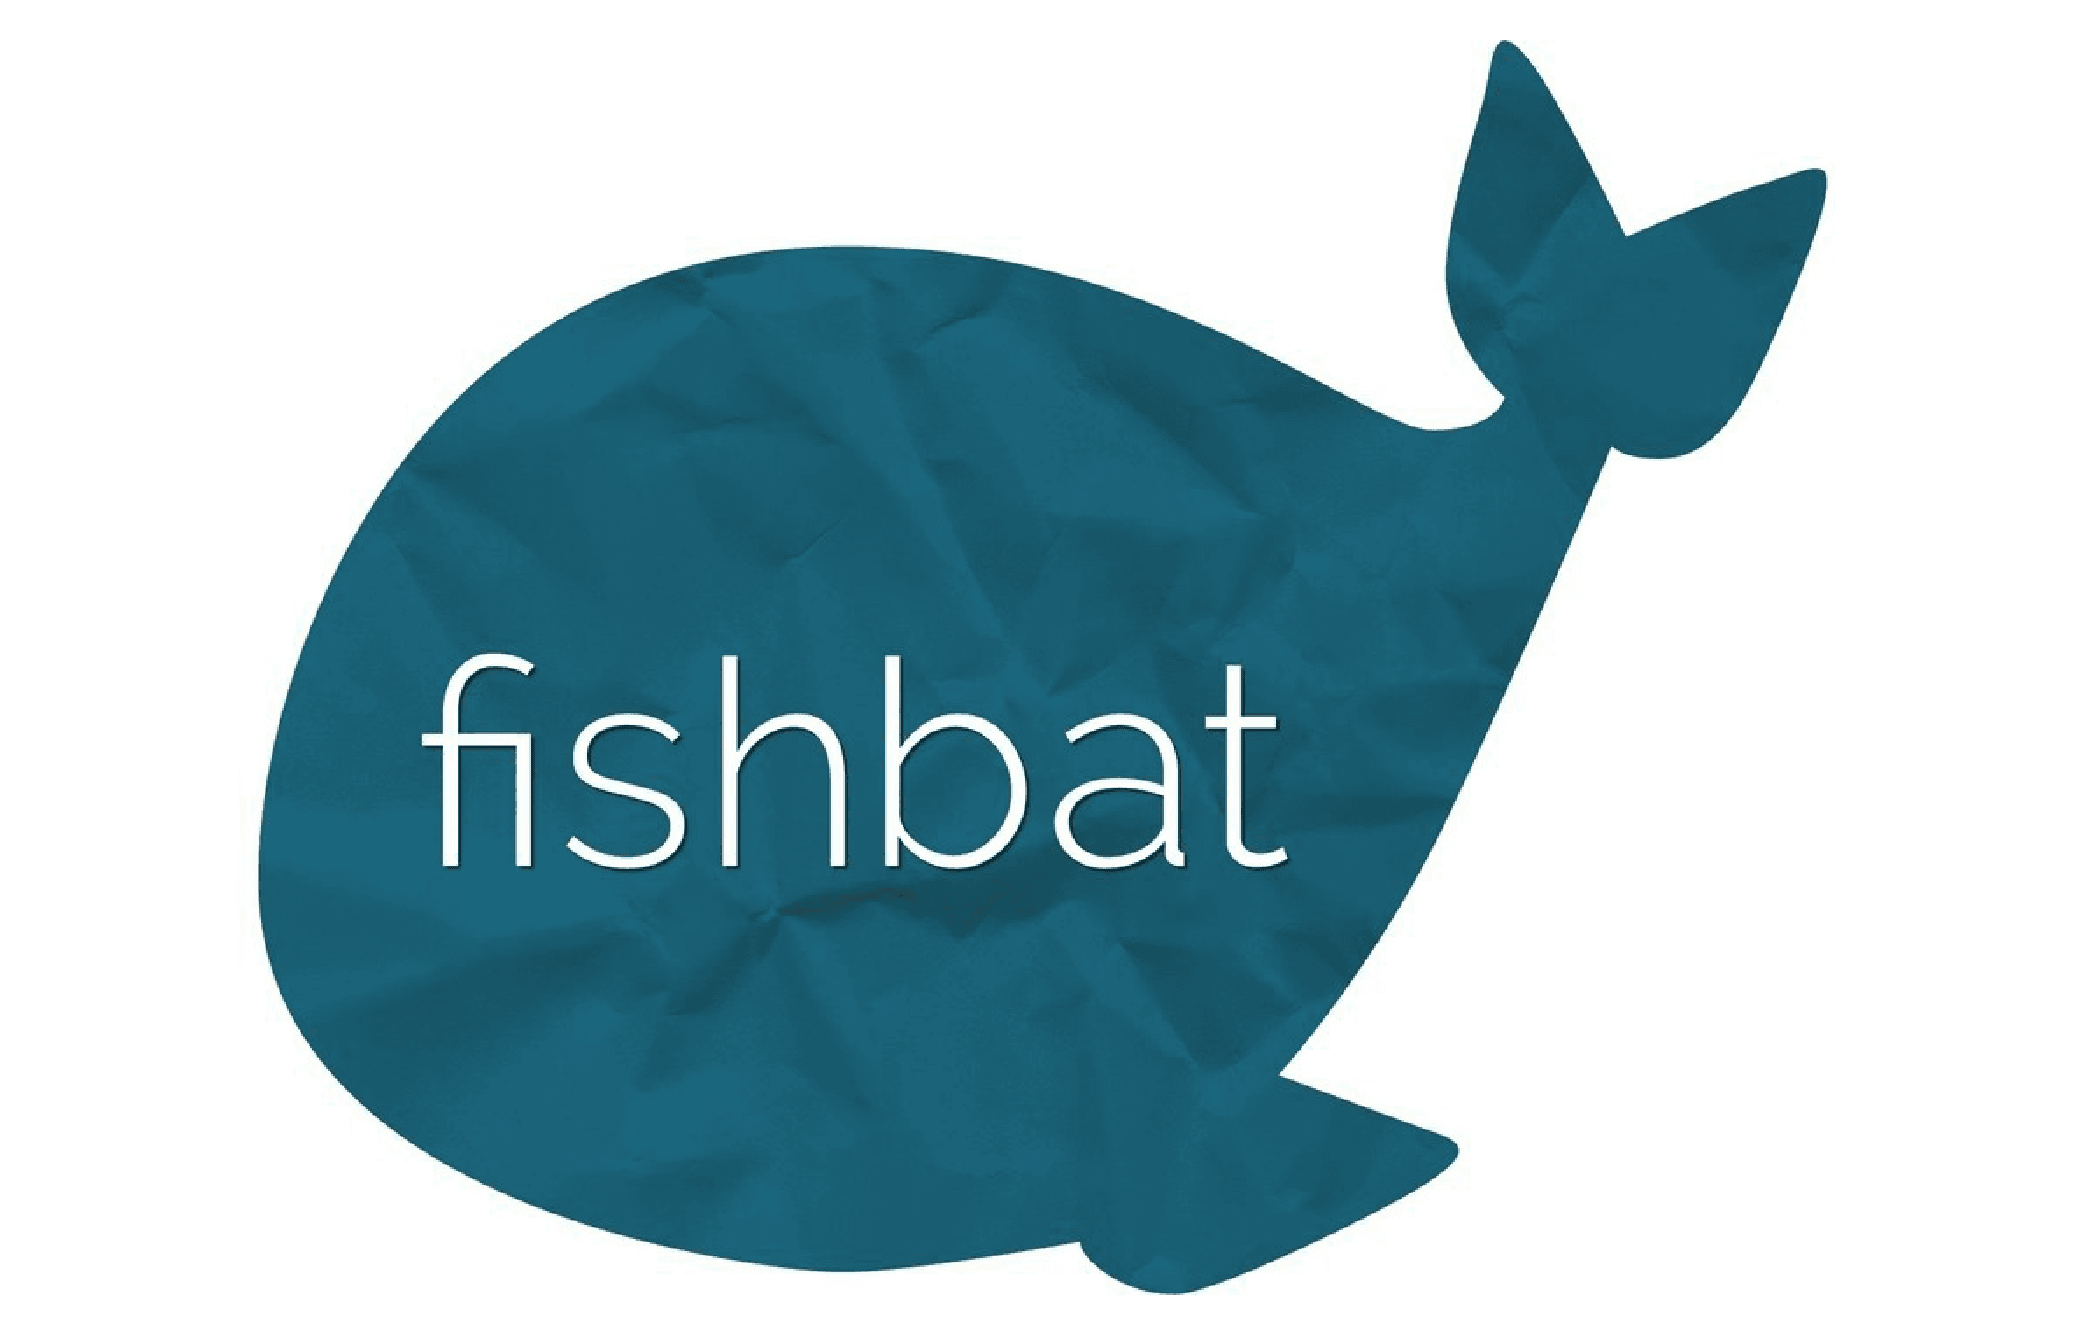 PointofSale Digital Marketing Company, fishbat,